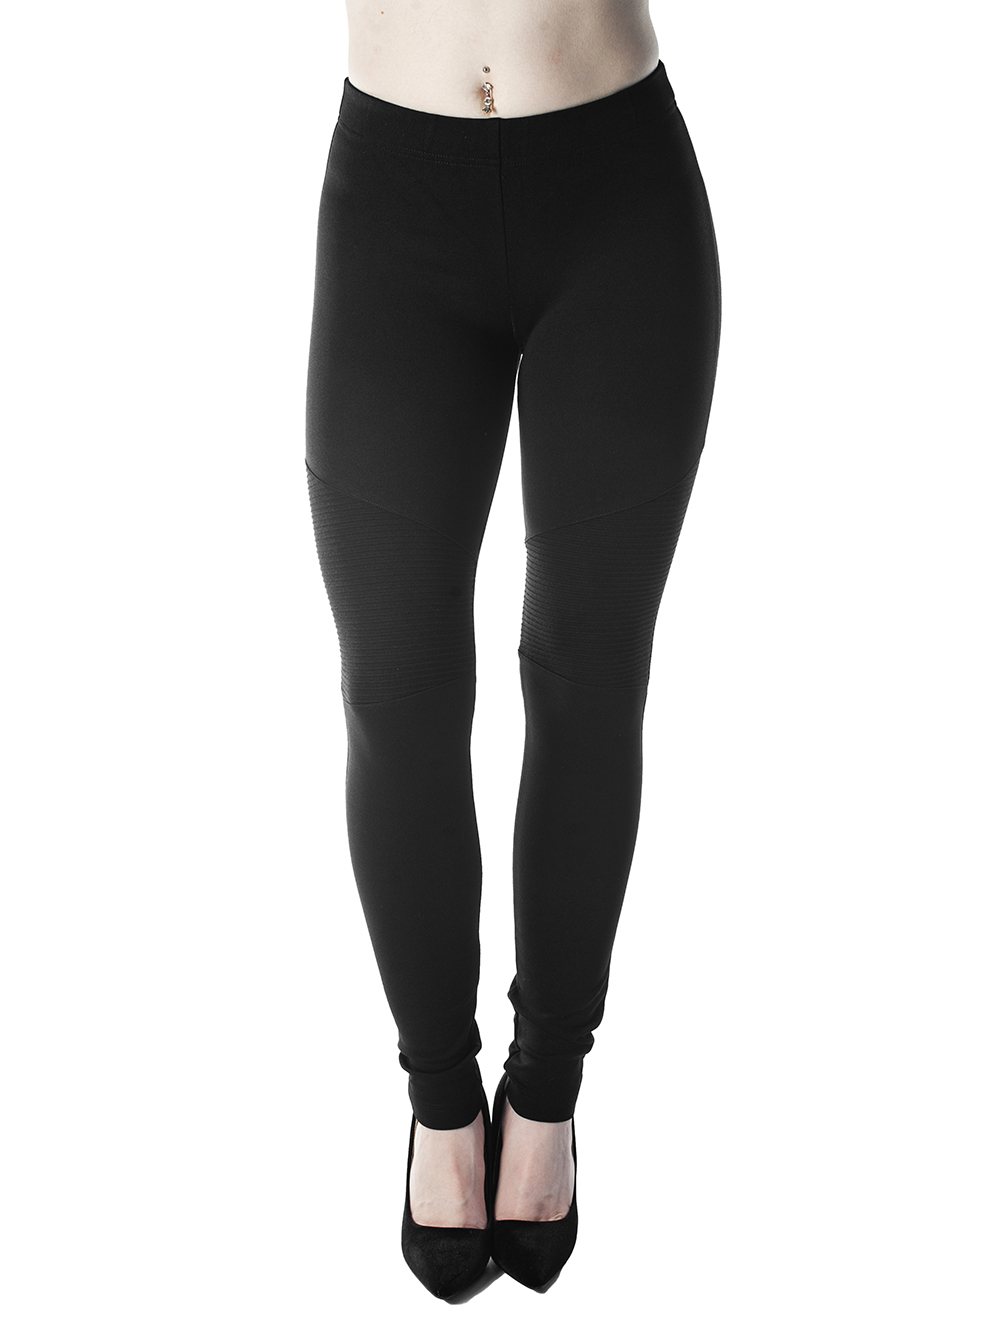 Conte Darling leggingsit long